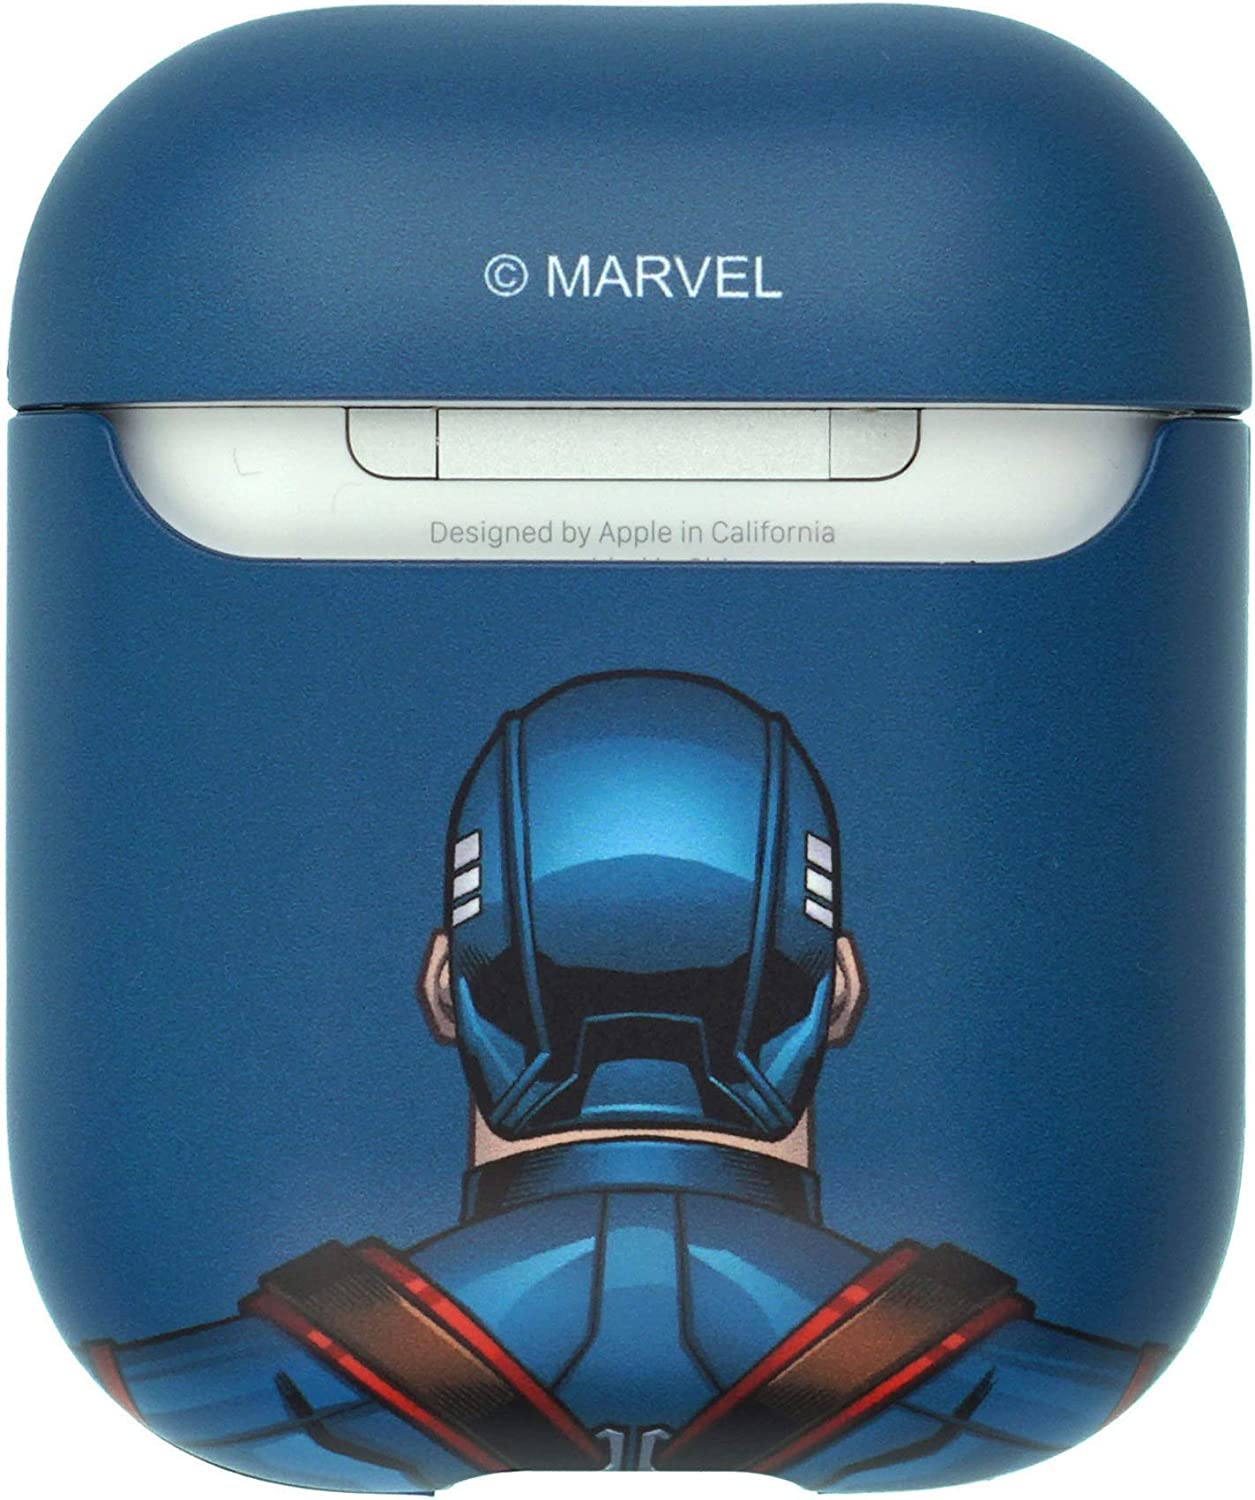 Action Iron Man Avengers AirPods Case Protective Hard PC Shell Cute Cover Front LED Visible Accessories Compatible with Apple Airpods 1 /& AirPods 2